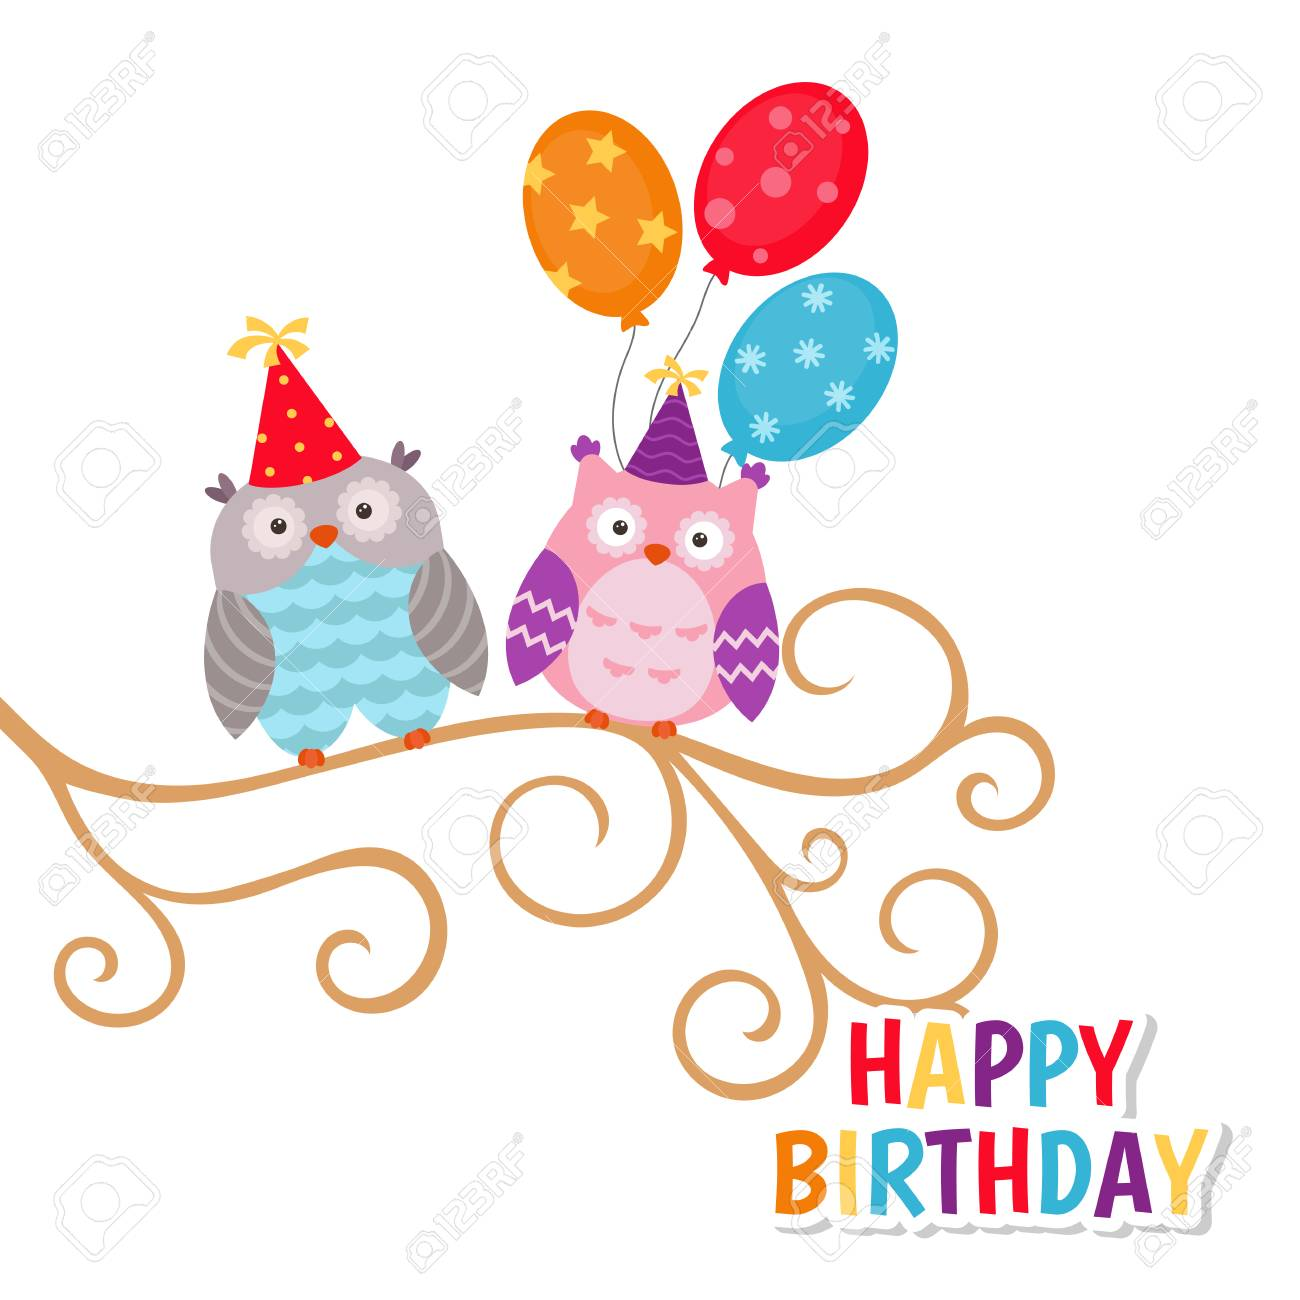 Happy Birthday Greeting Card Template With Owls And Balloons Royalty